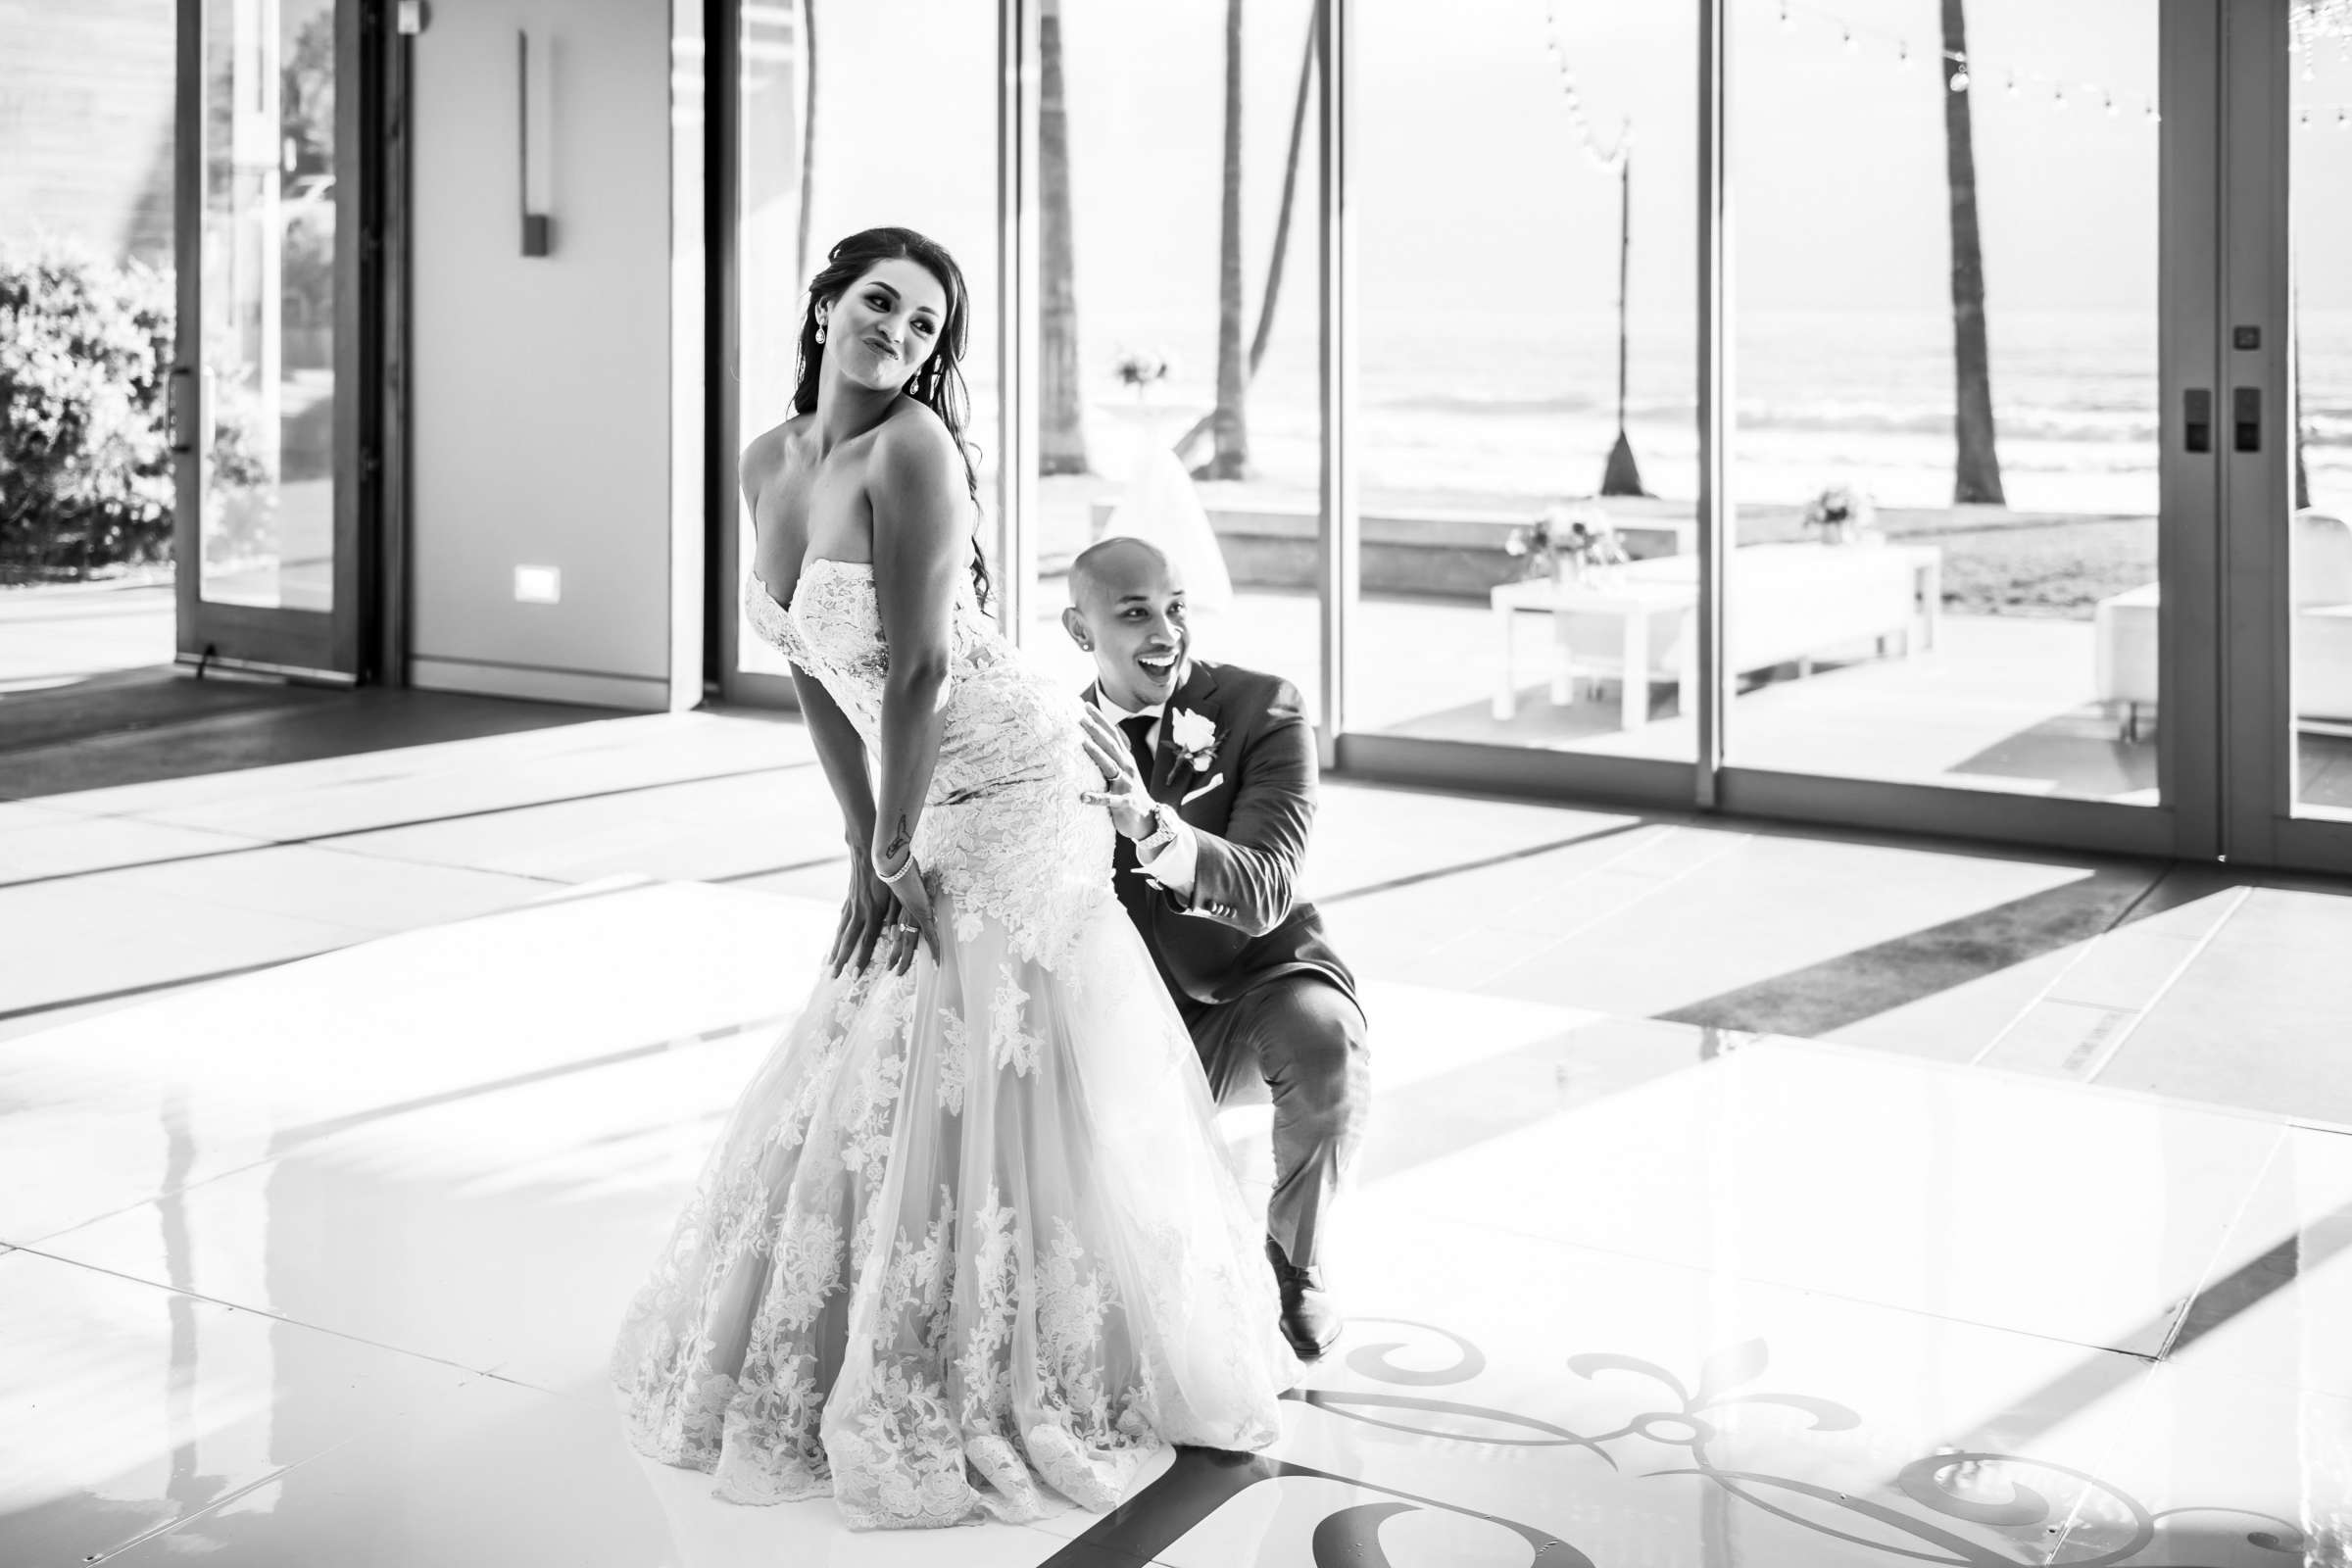 Scripps Seaside Forum Wedding coordinated by Lavish Weddings, Cindy and Justin Wedding Photo #381852 by True Photography